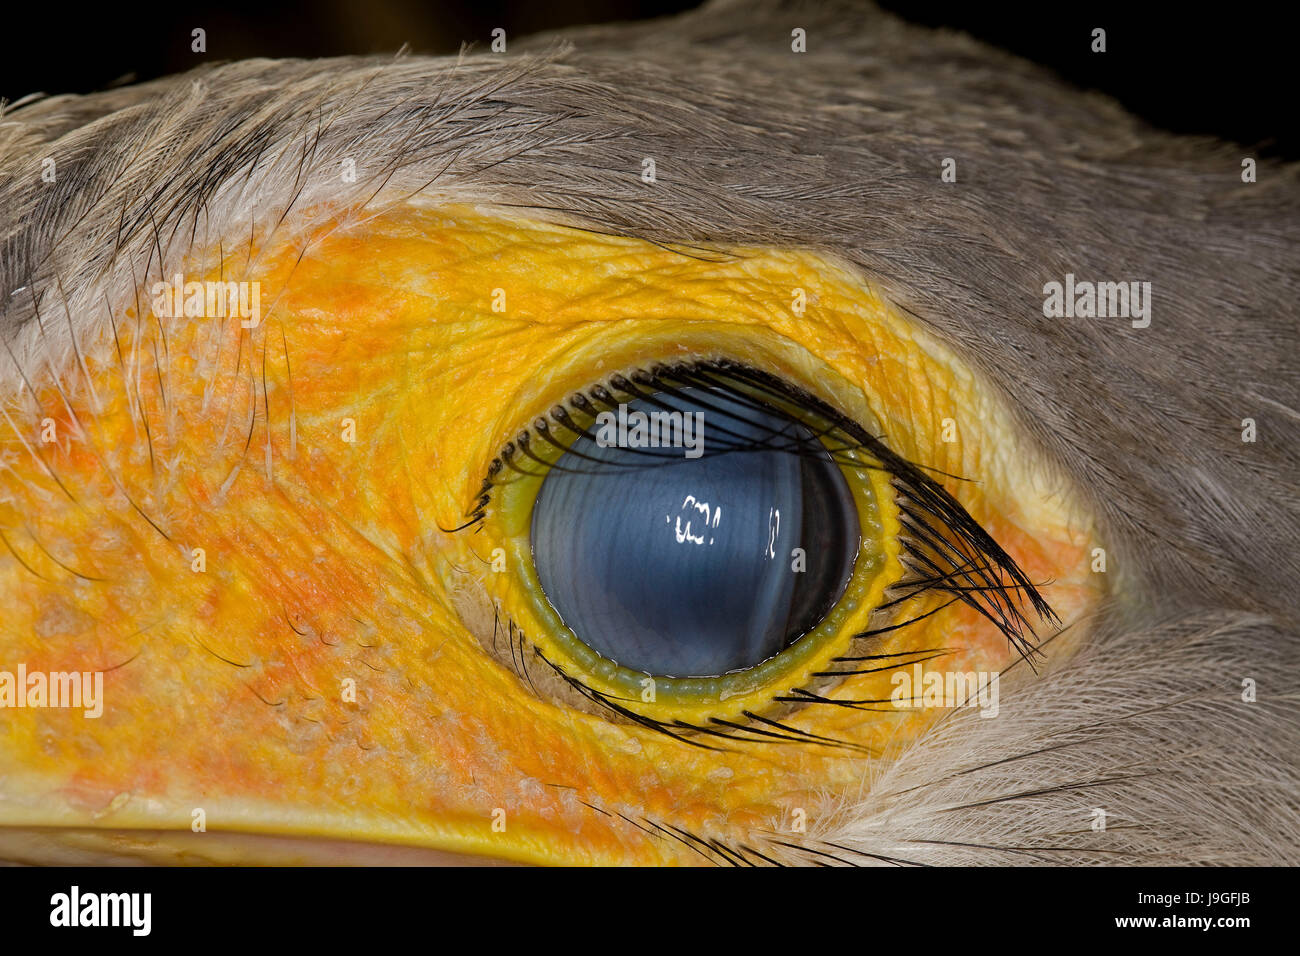 Secretary Bird, sagittarius serpentarius, Close Up of Eye Stock Photo